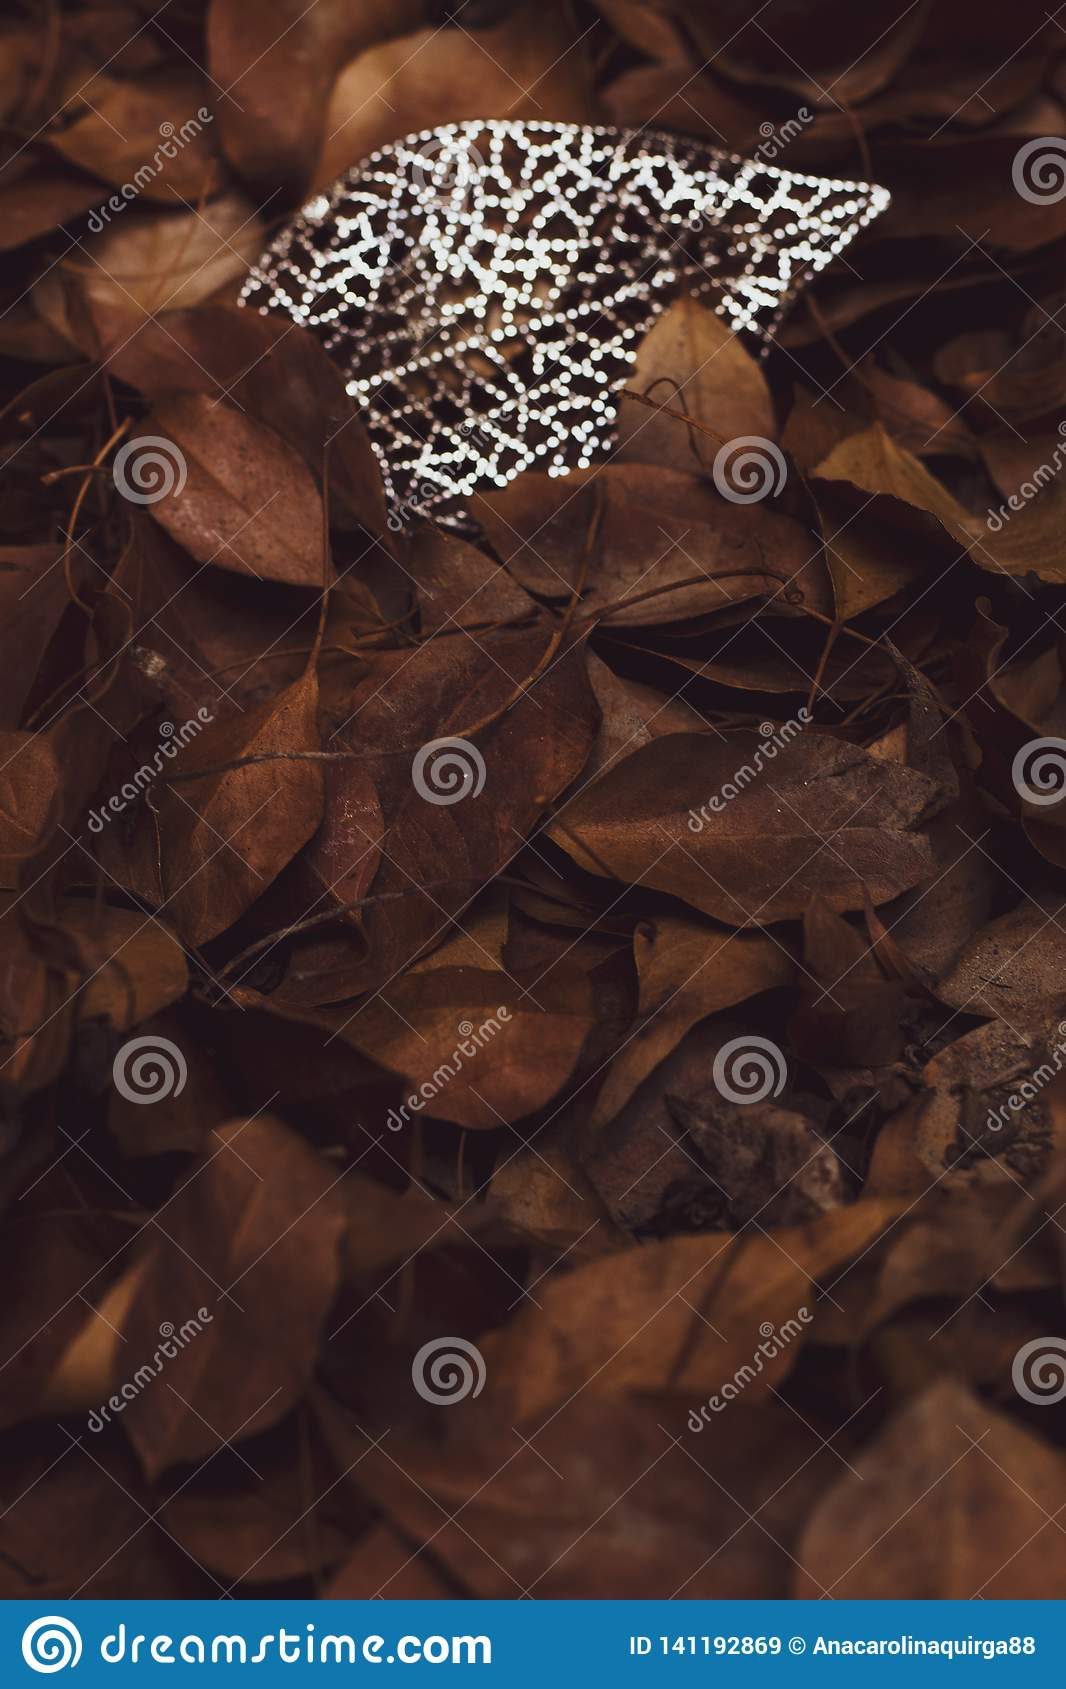 Dry tree leaves, between crystals. It symbolizes maturity and femininity.